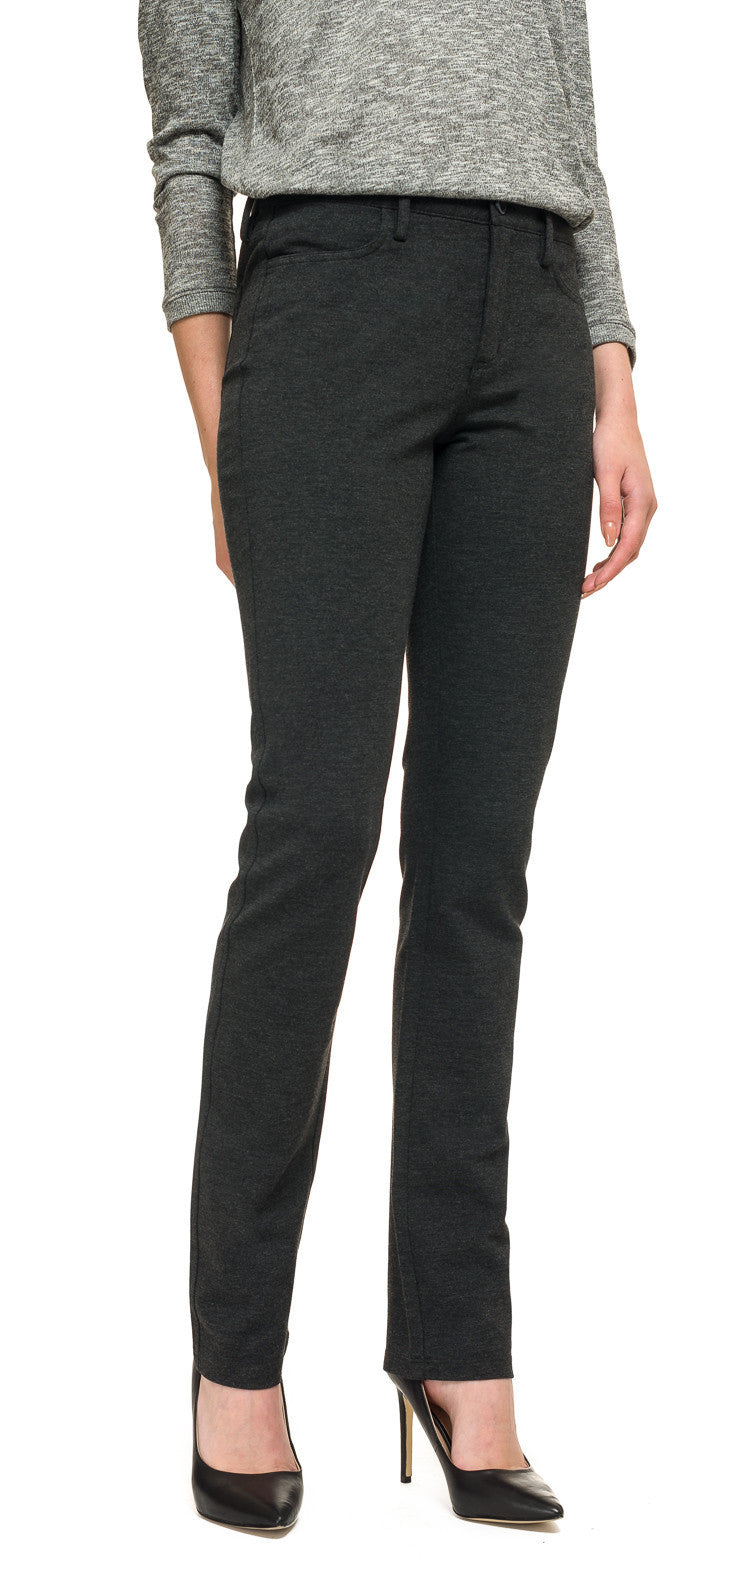 NYDJ Charcoal Cindy Slim Jersey Trouser